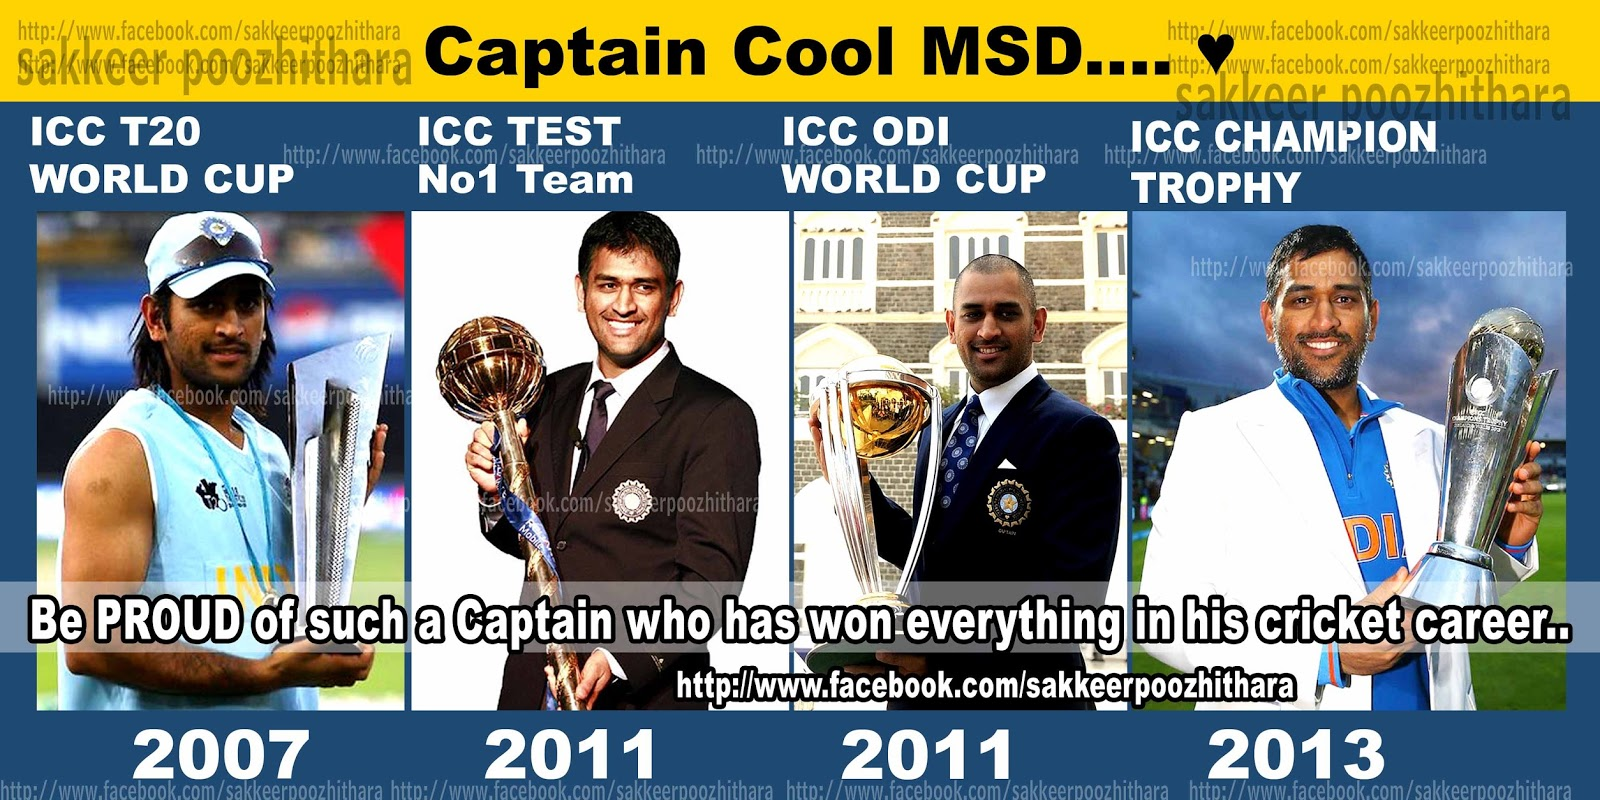 ... icc champion trophy 2013, ICC T20 WORLD CUP 2007 ,ICC WORLD CUP 2011